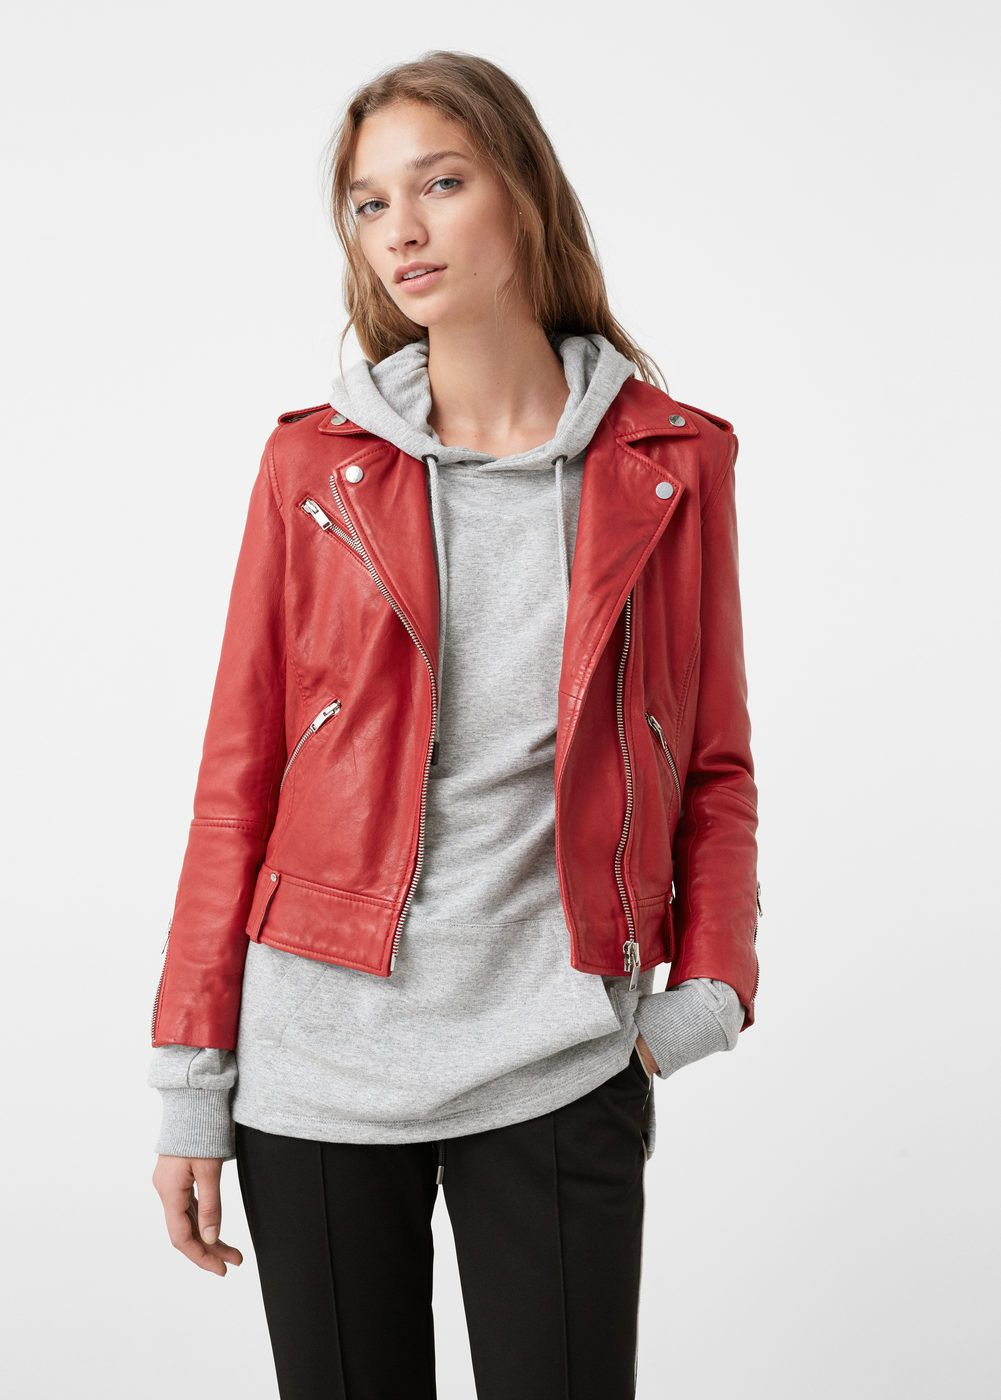 a824facc Leather biker jacket - Jackets for Women | MANGO USA Cazadora Cuero,  Suéteres Negros,